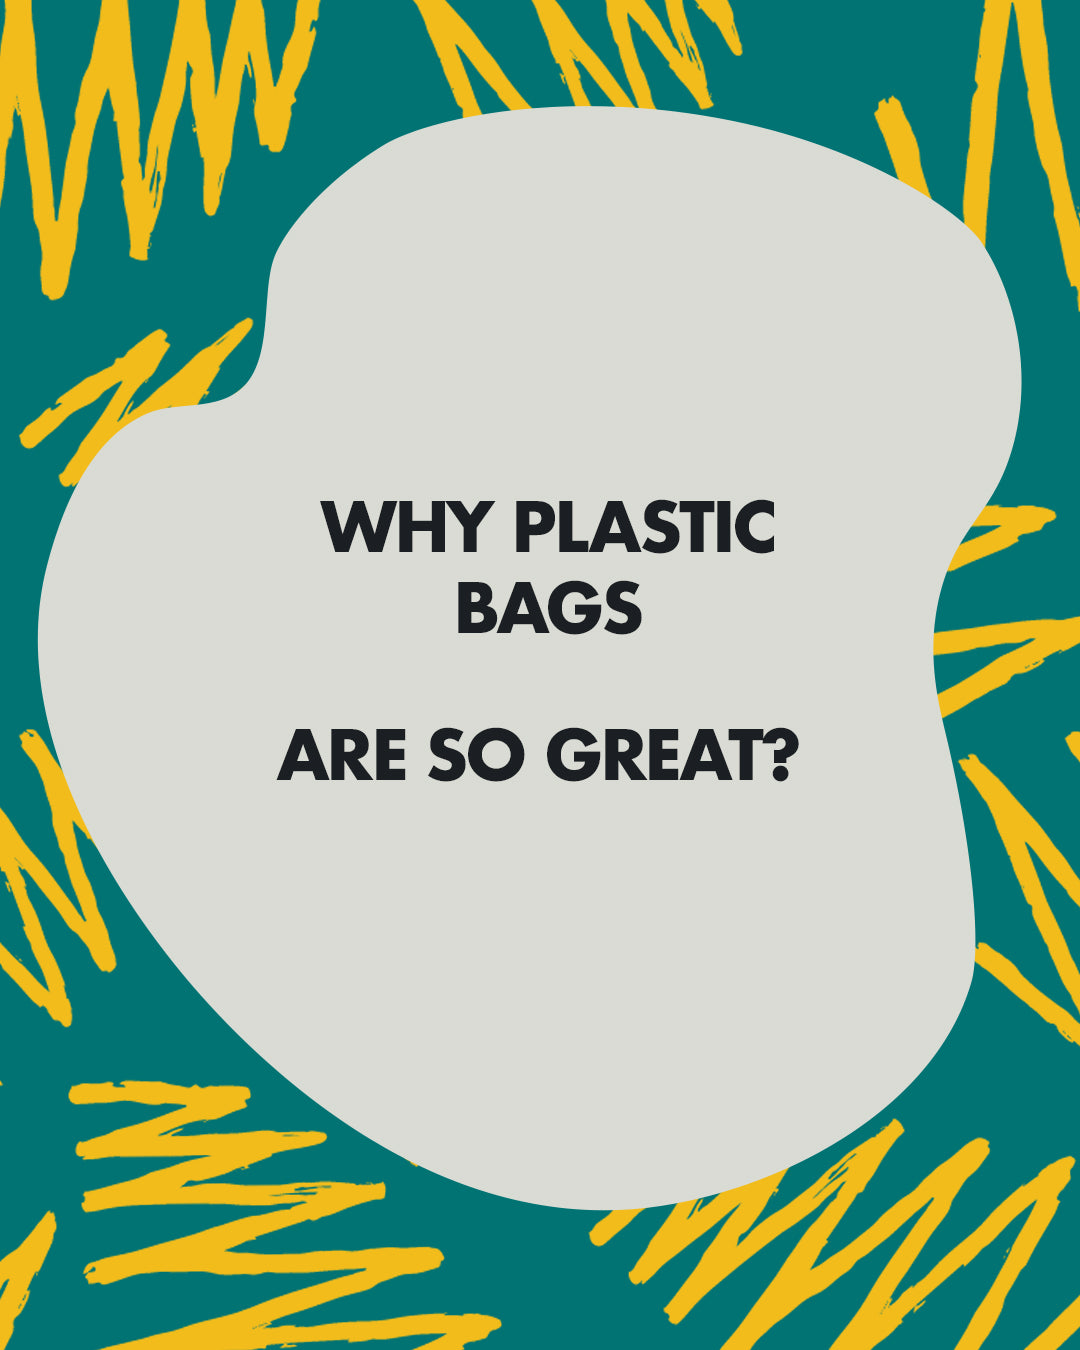 Plastic Bags Thank You| Why Plastic Bags are so Great?